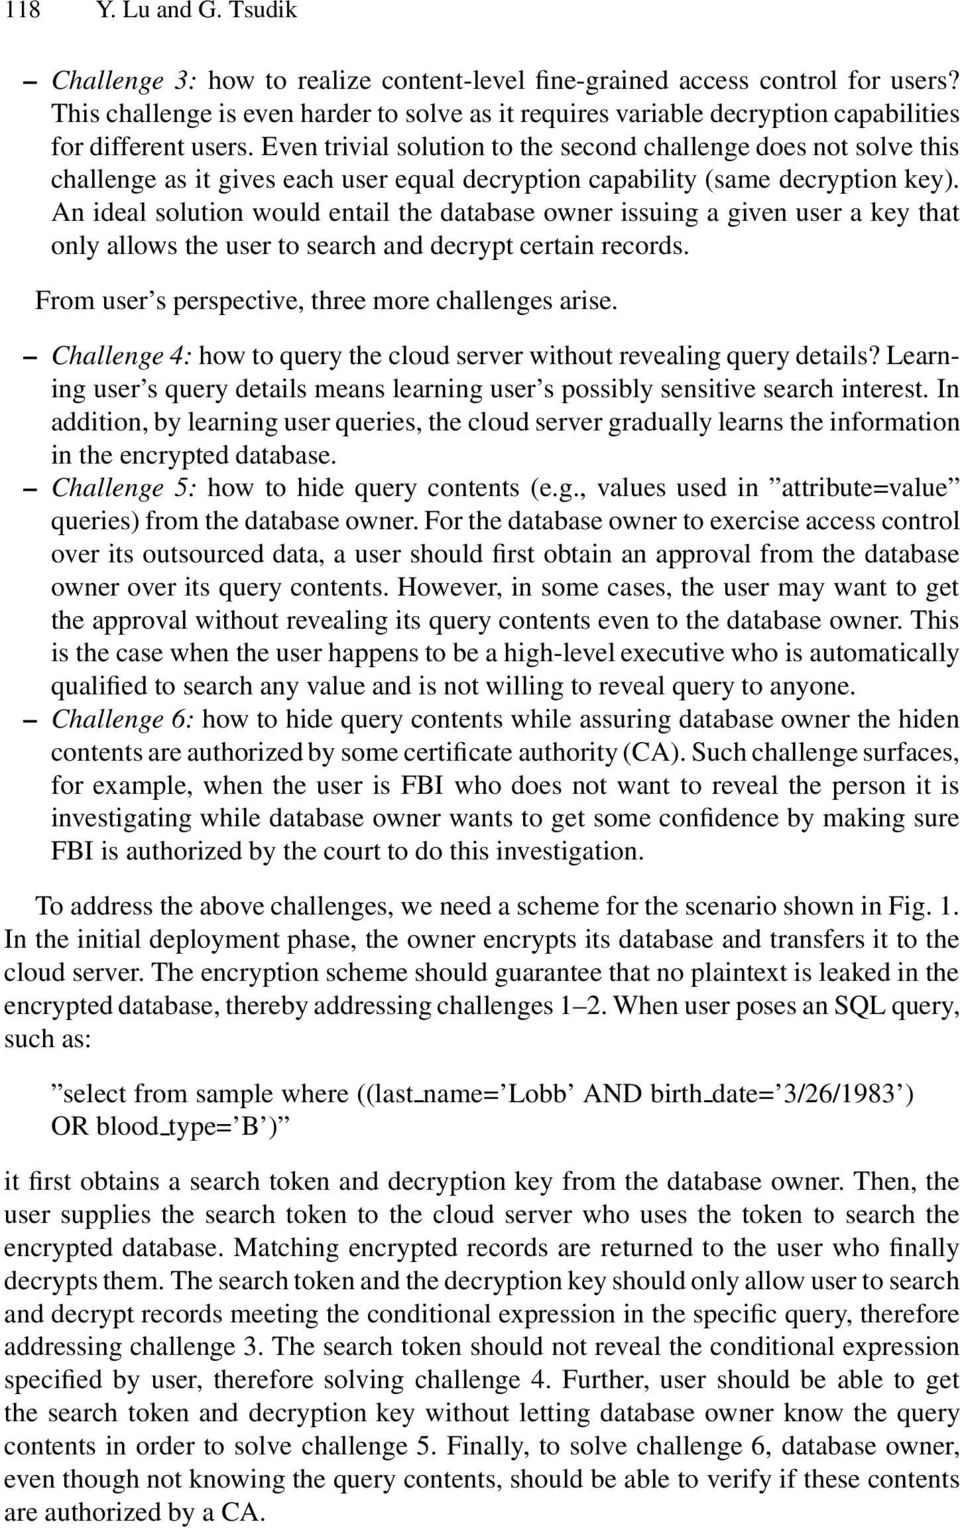 Even trivial solution to the second challenge does not solve this challenge as it gives each user equal decryption capability (same decryption key).